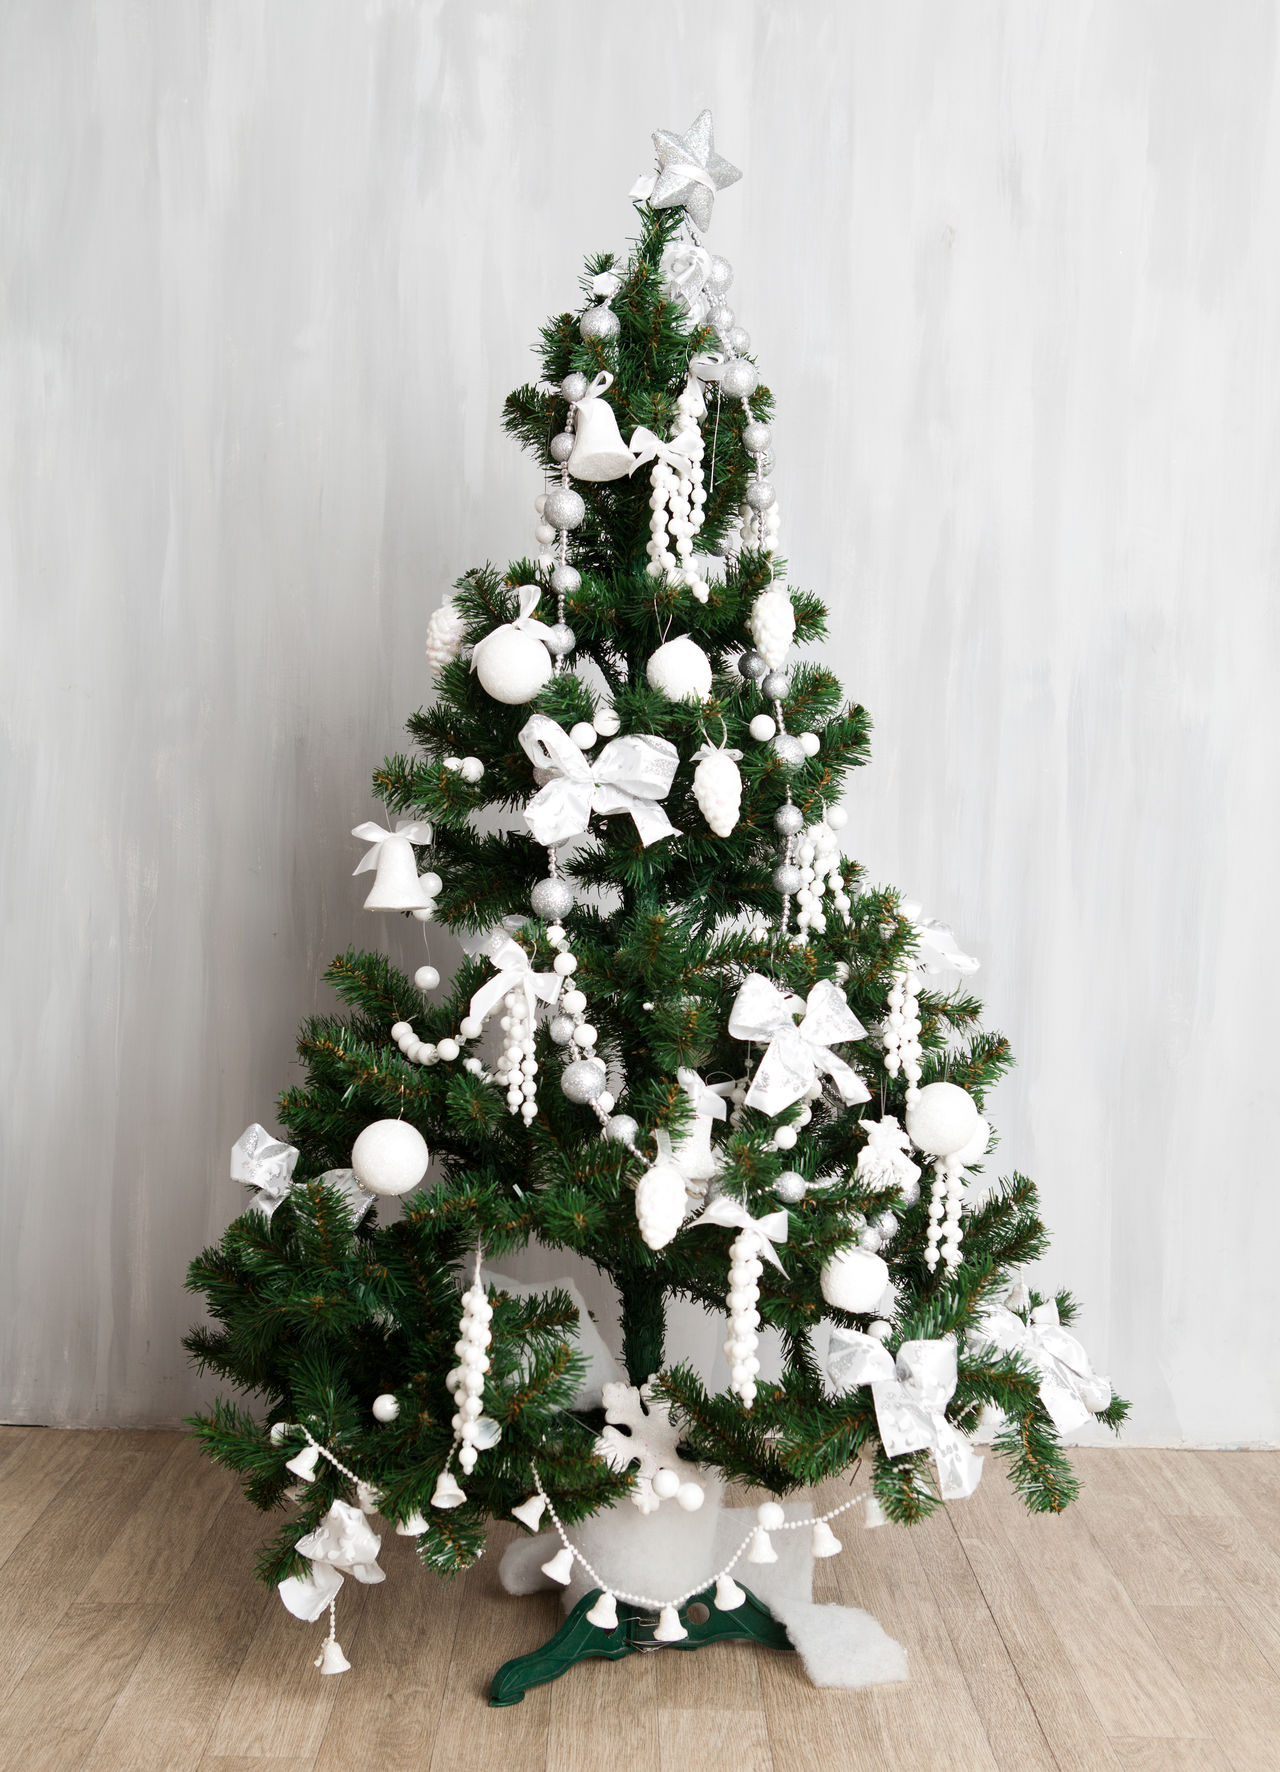 Beautiful stock photos of weihnachtsbaum, flower, nature, no people, christmas decoration